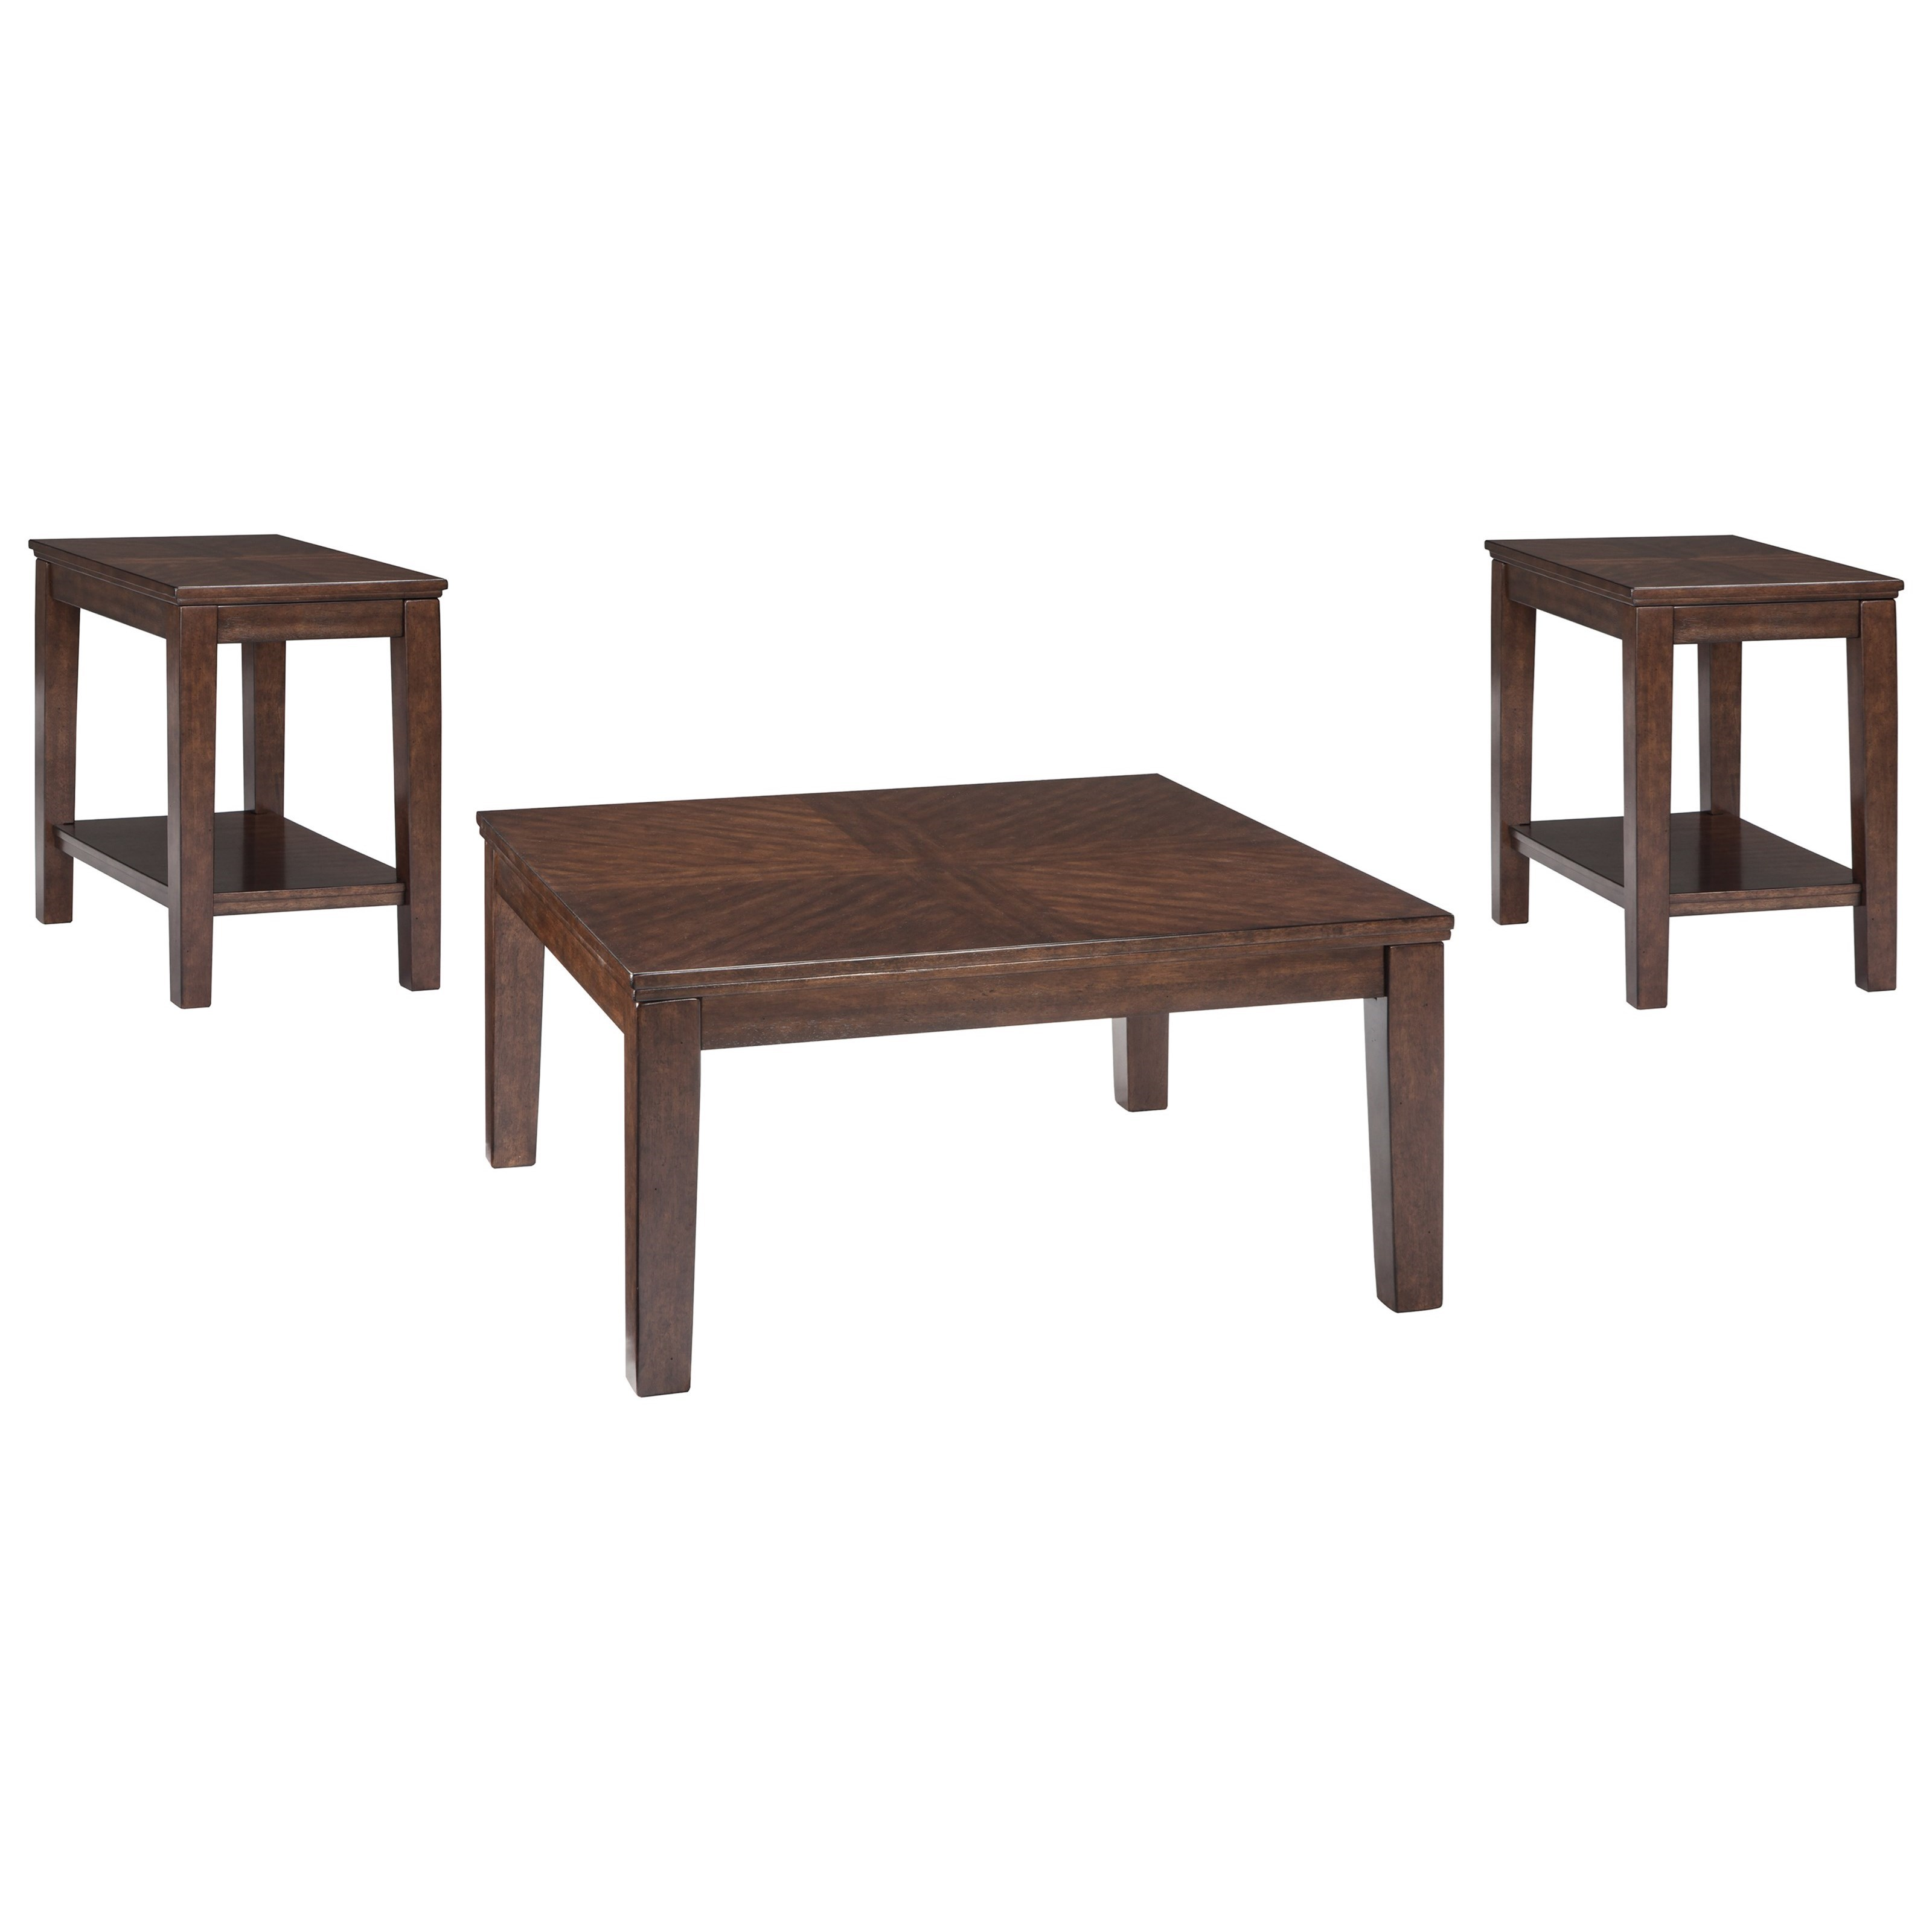 Signature Design By Ashley Marlinton Occasional Table Set With Birch Veneer Wayside Furniture